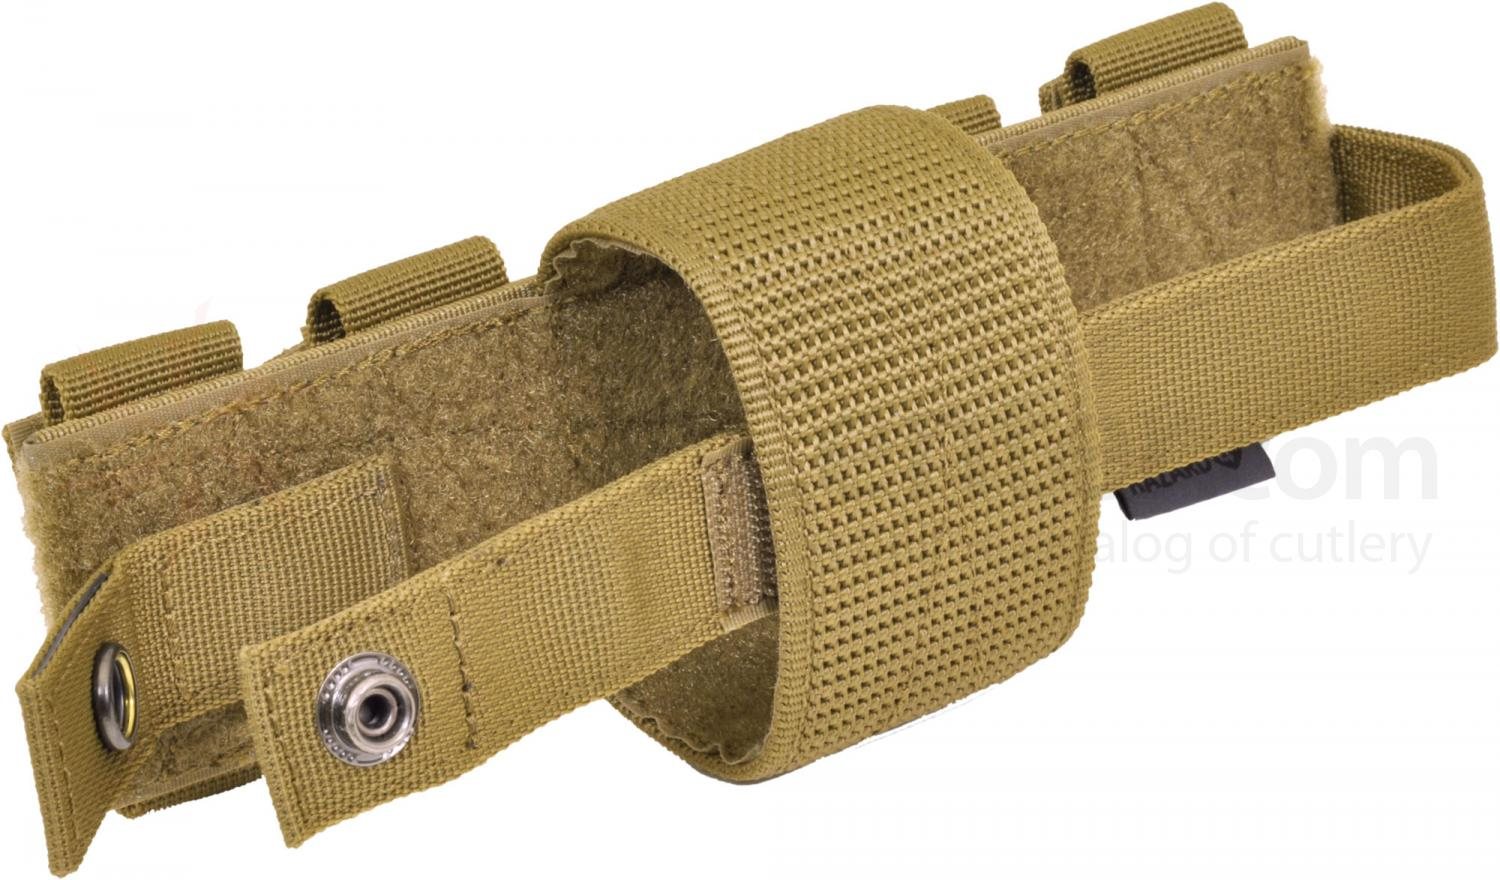 Hazard 4 LoadUp MOLLE Gear/Magazine Holster, Coyote